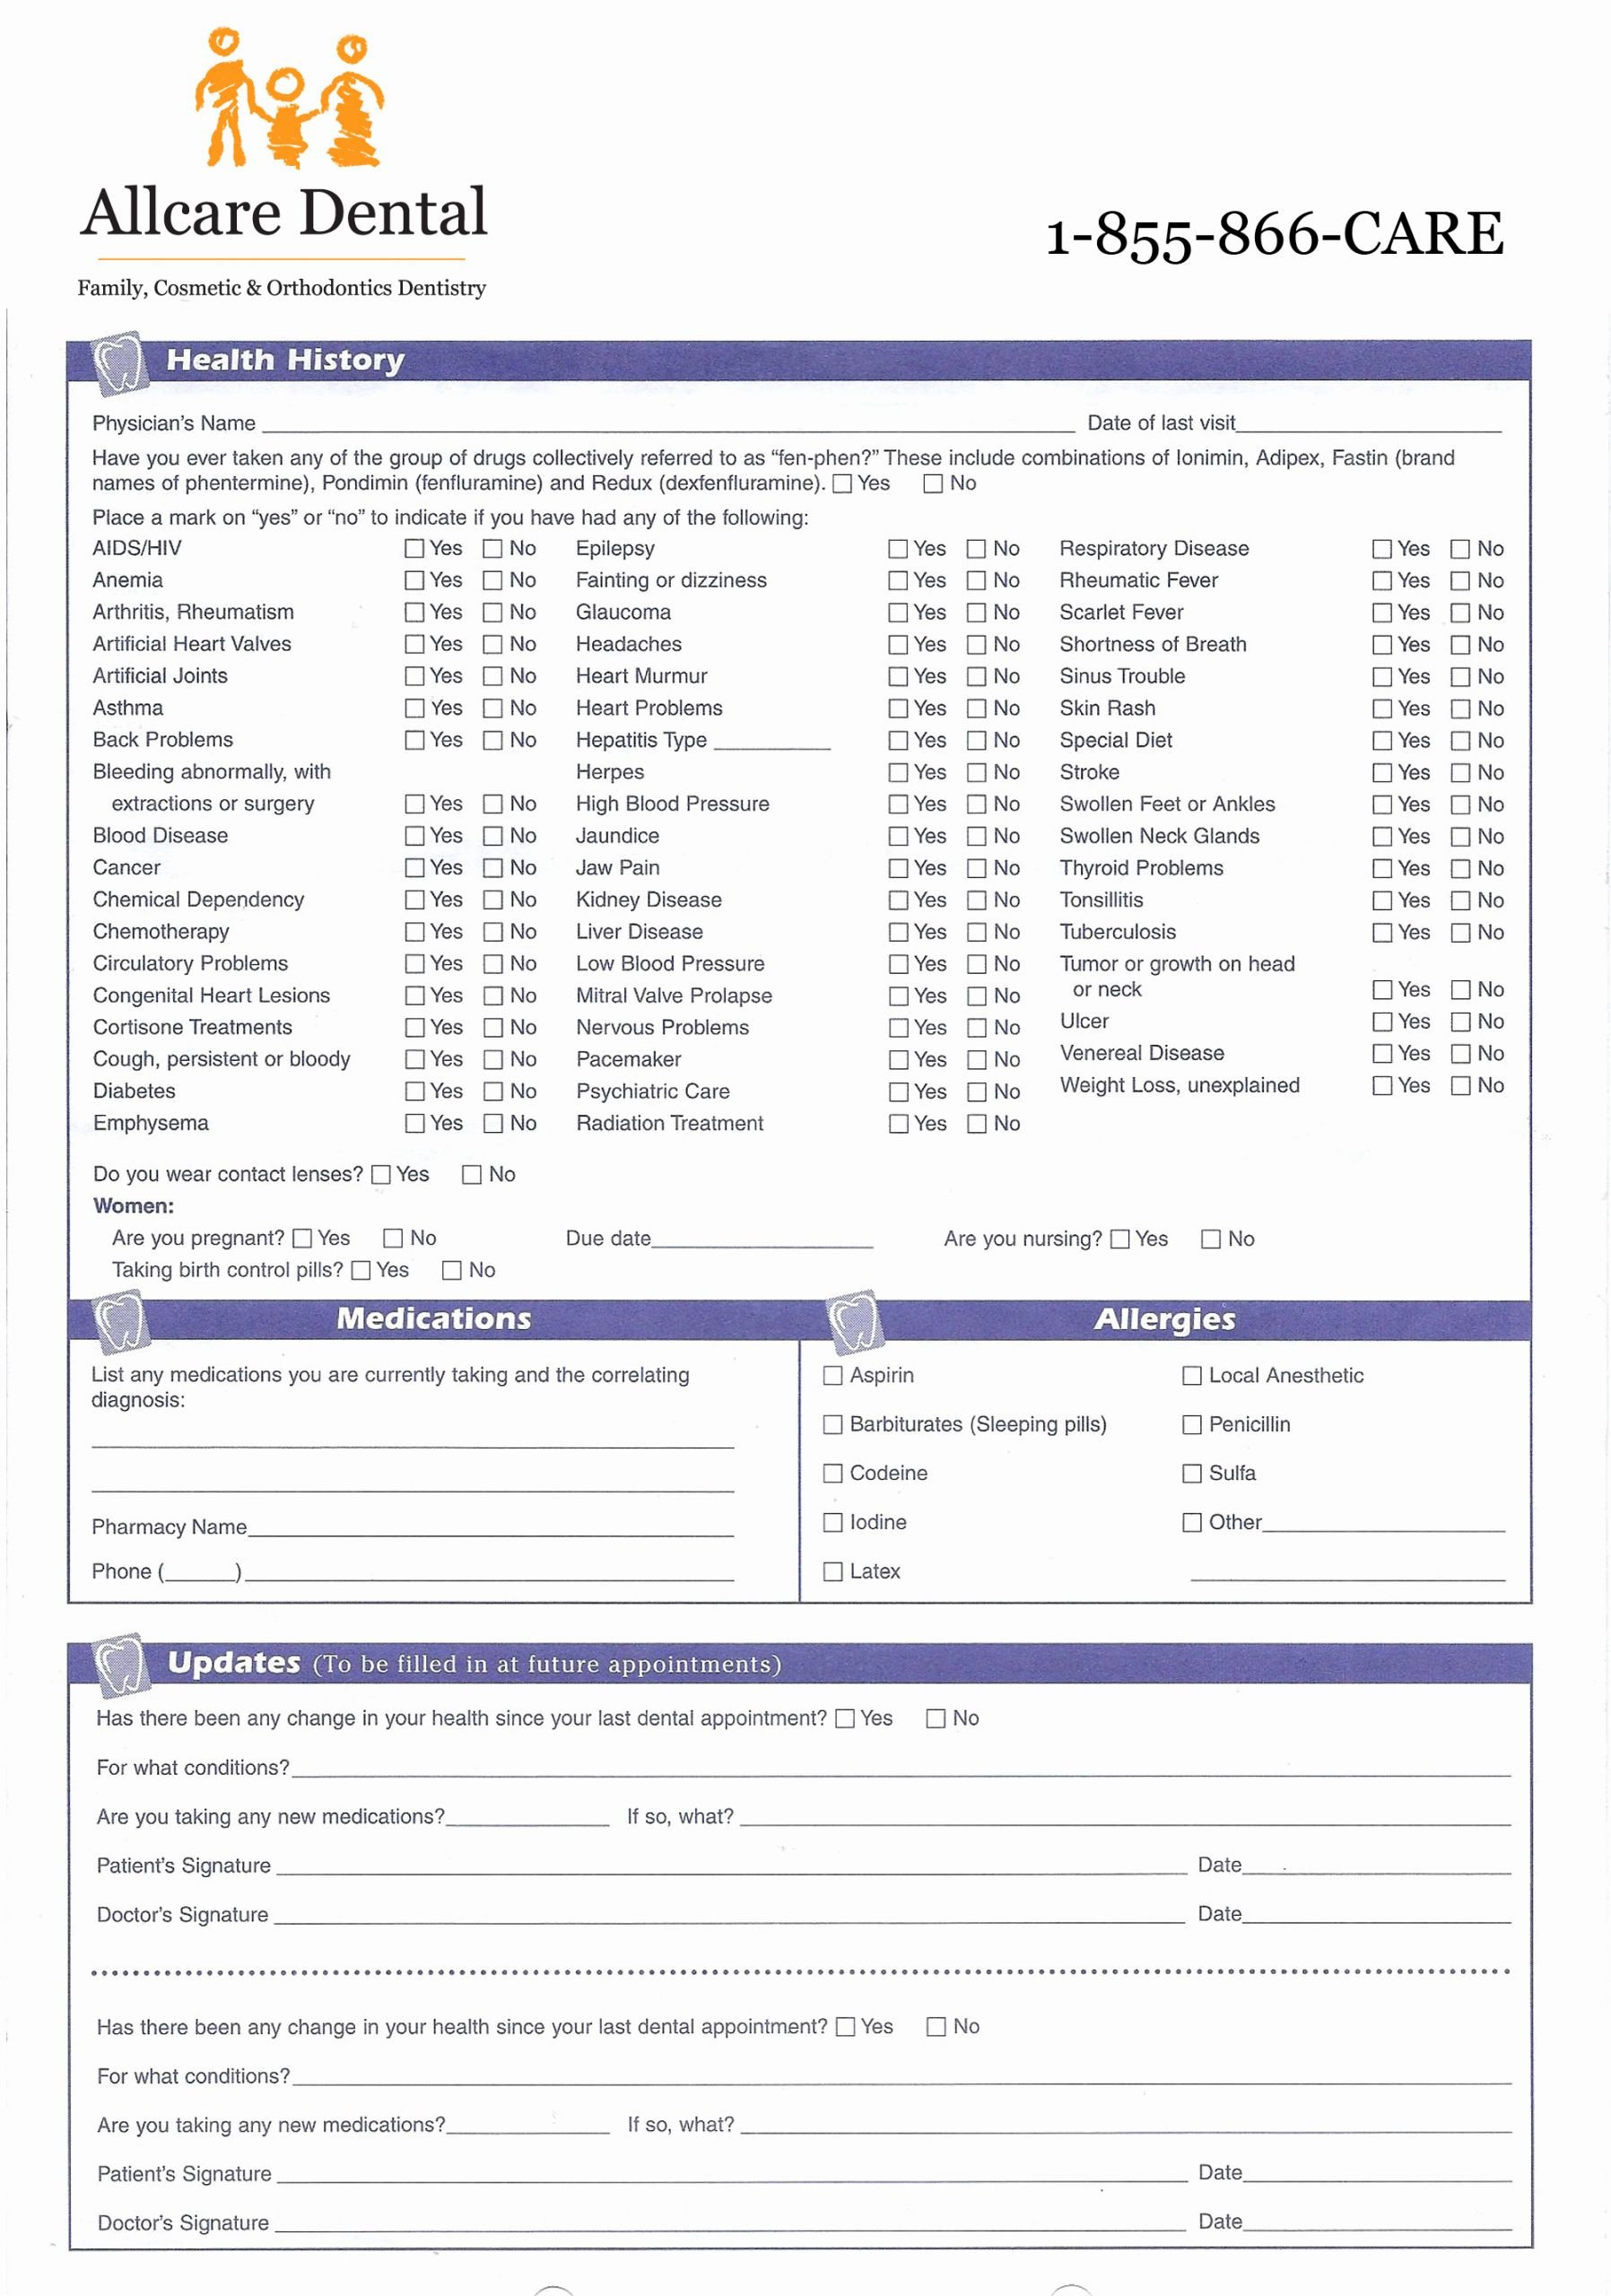 Dental Medical History form Template Awesome Medical History form for Dental Fice